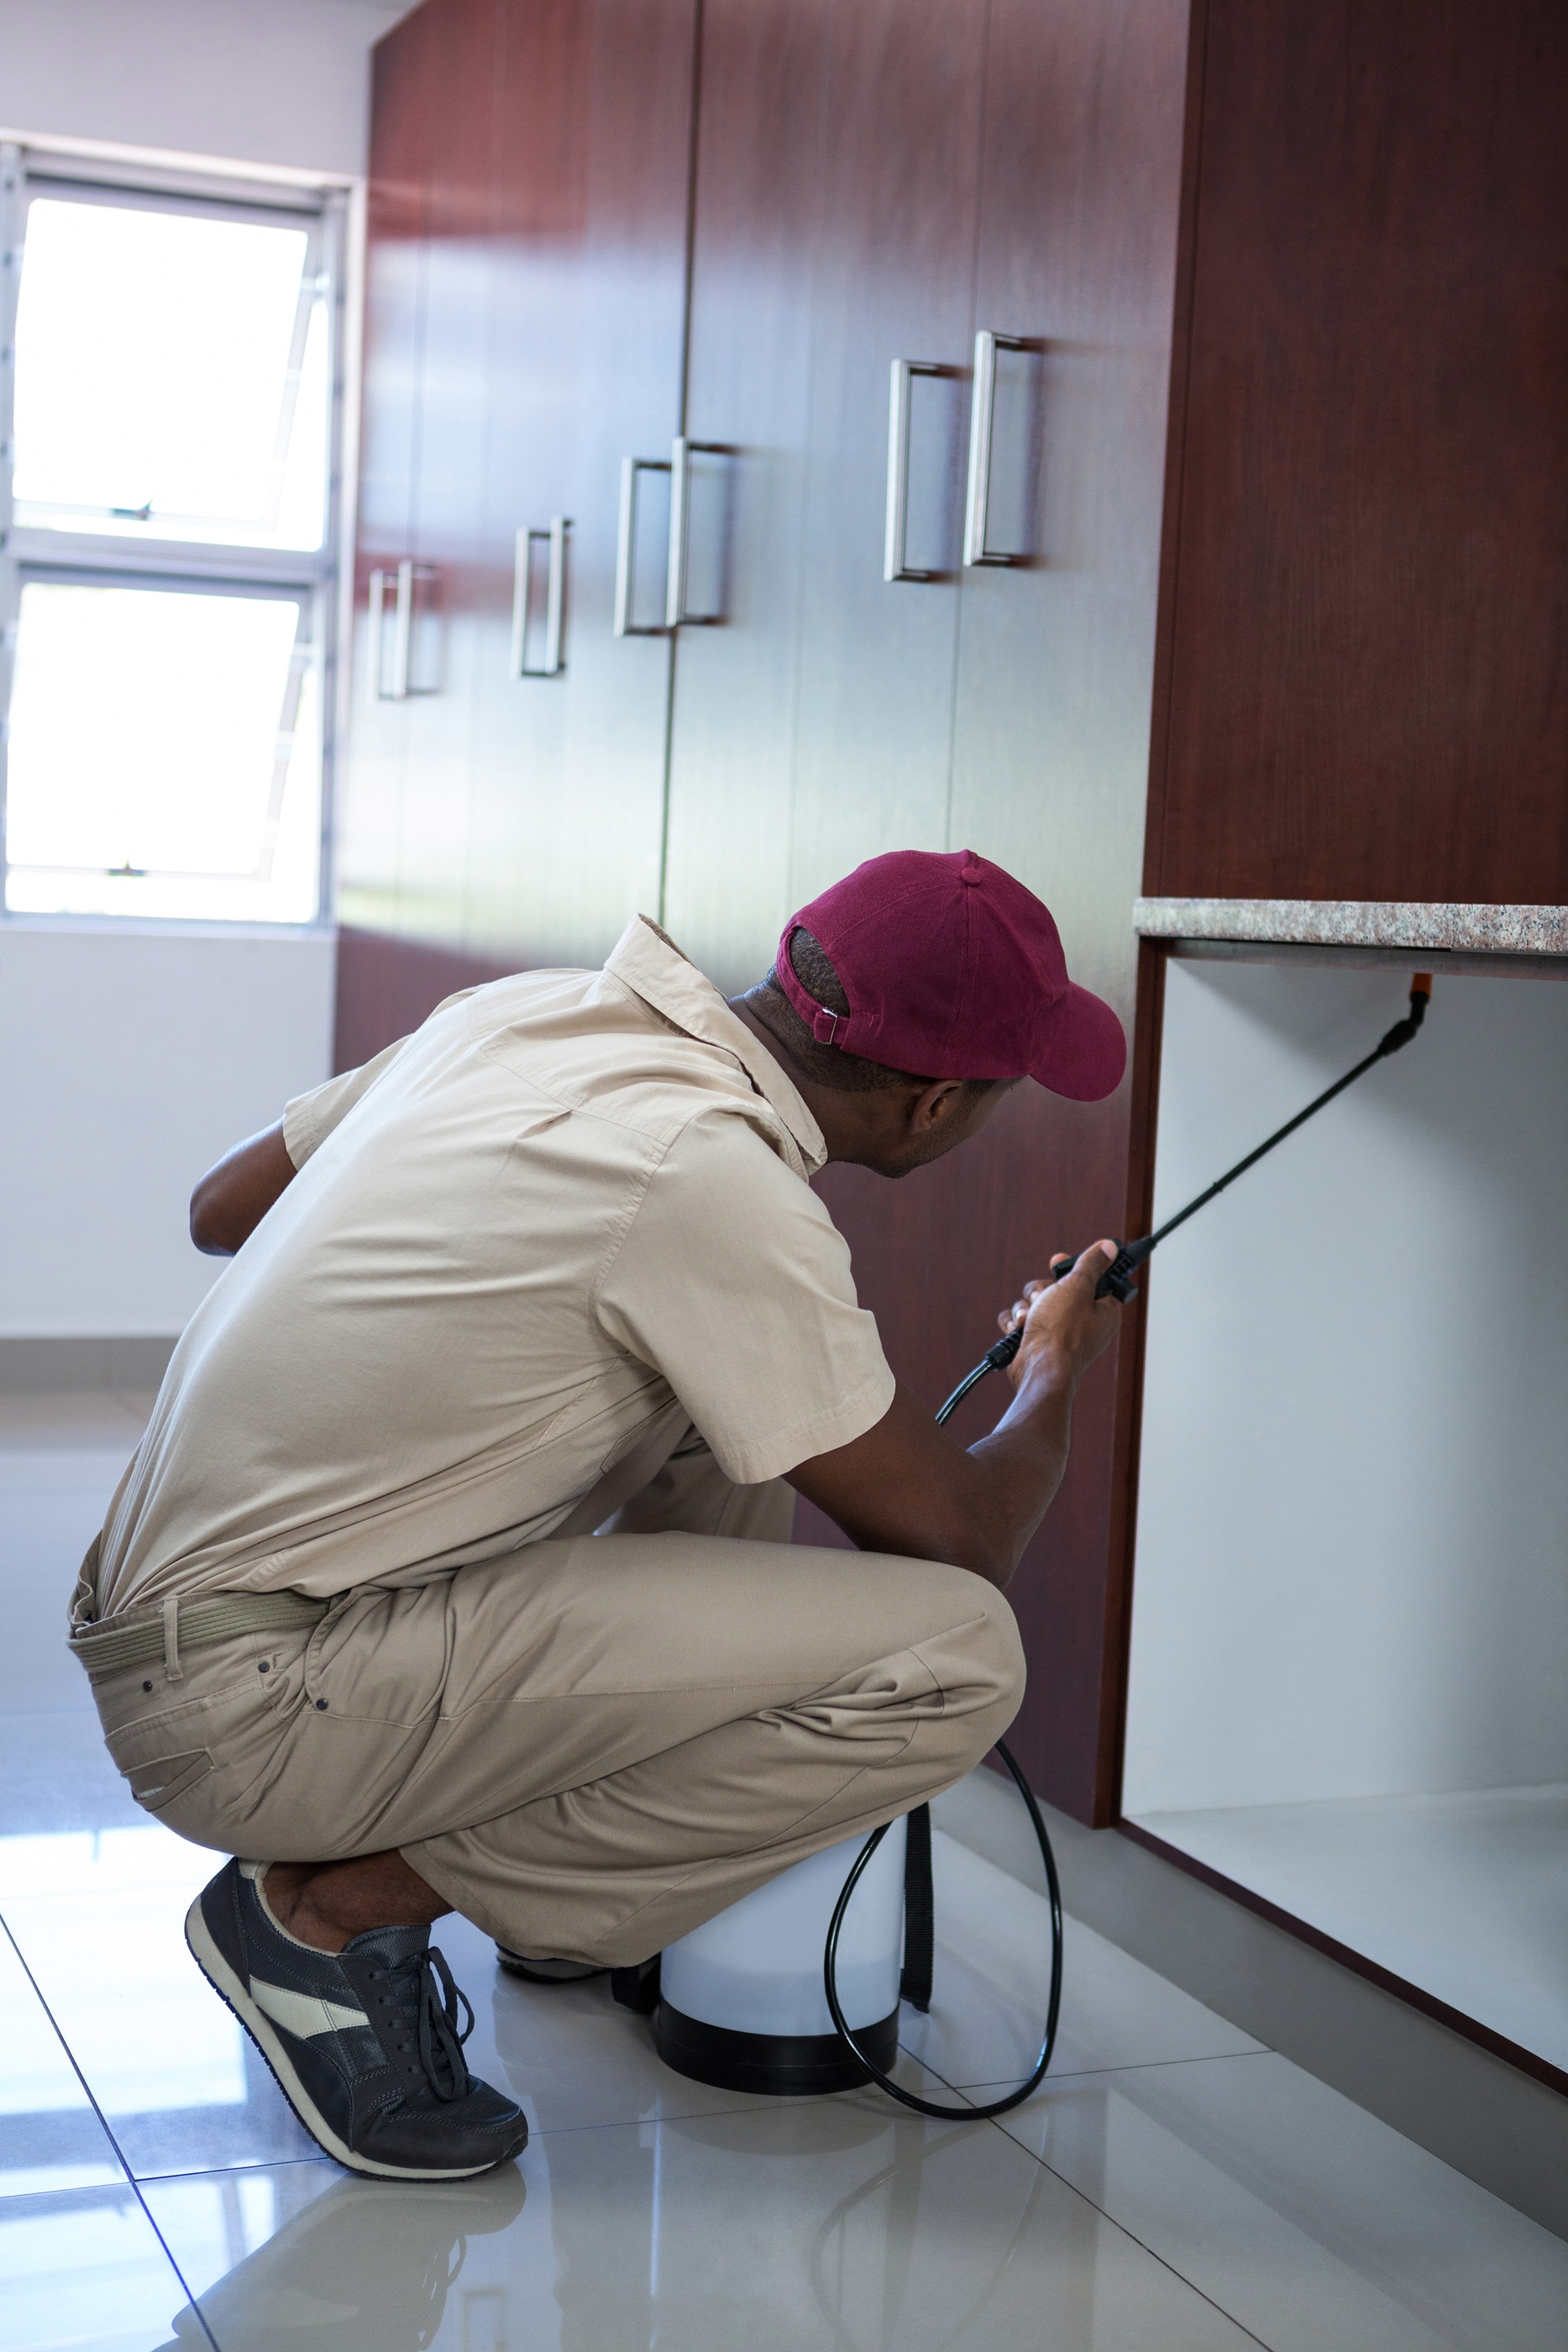 Pest control man spraying pesticide in kitchen because knowing how to prevent bed bugs from coming back means getting rid of them first.